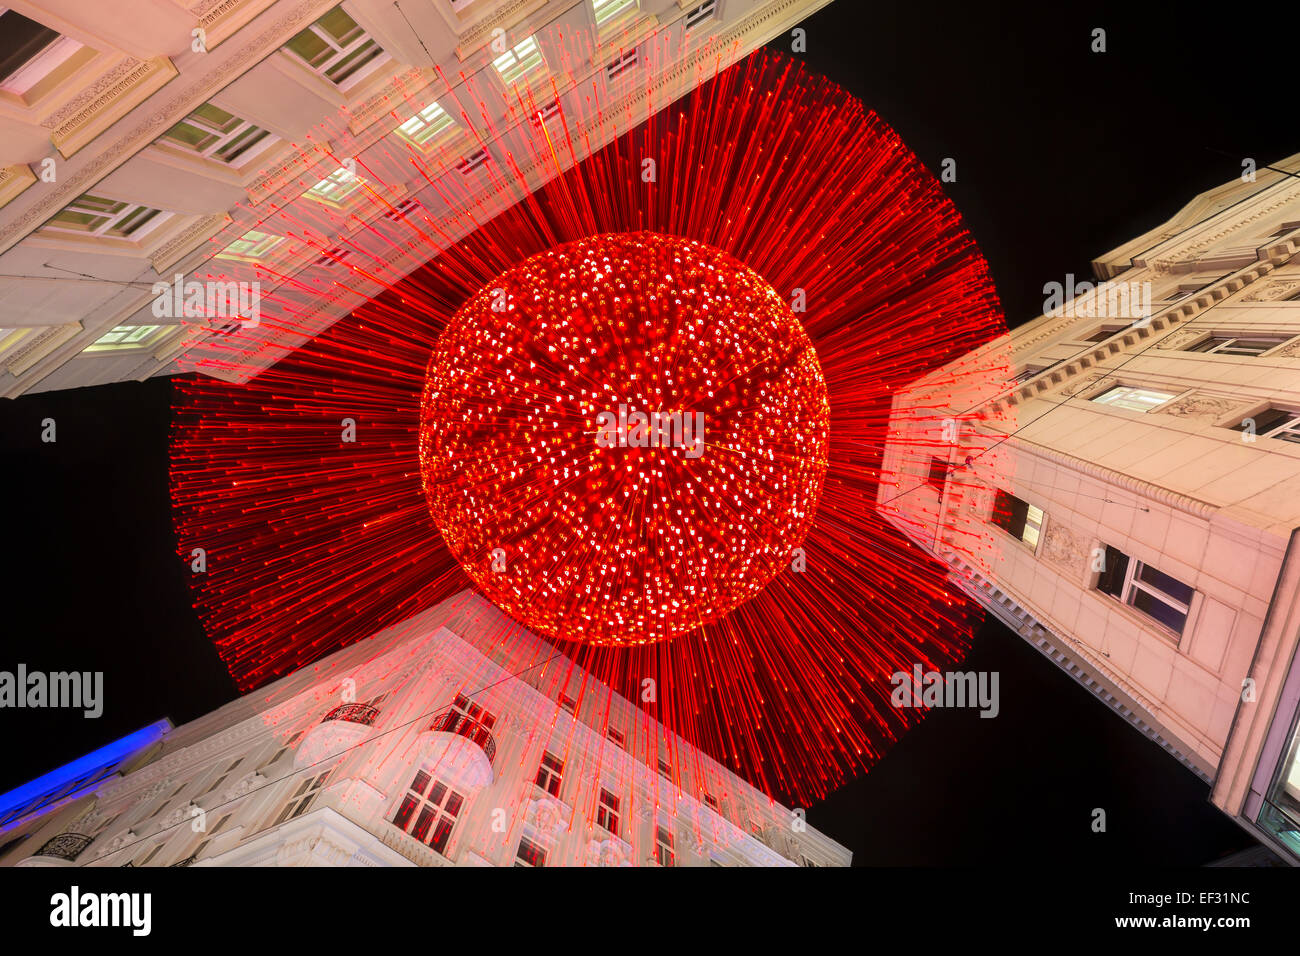 Christmas lights on Silvesterpfad, New Year's Eve Trail, at Rotenturmstraße street, Innere Stadt district, - Stock Image